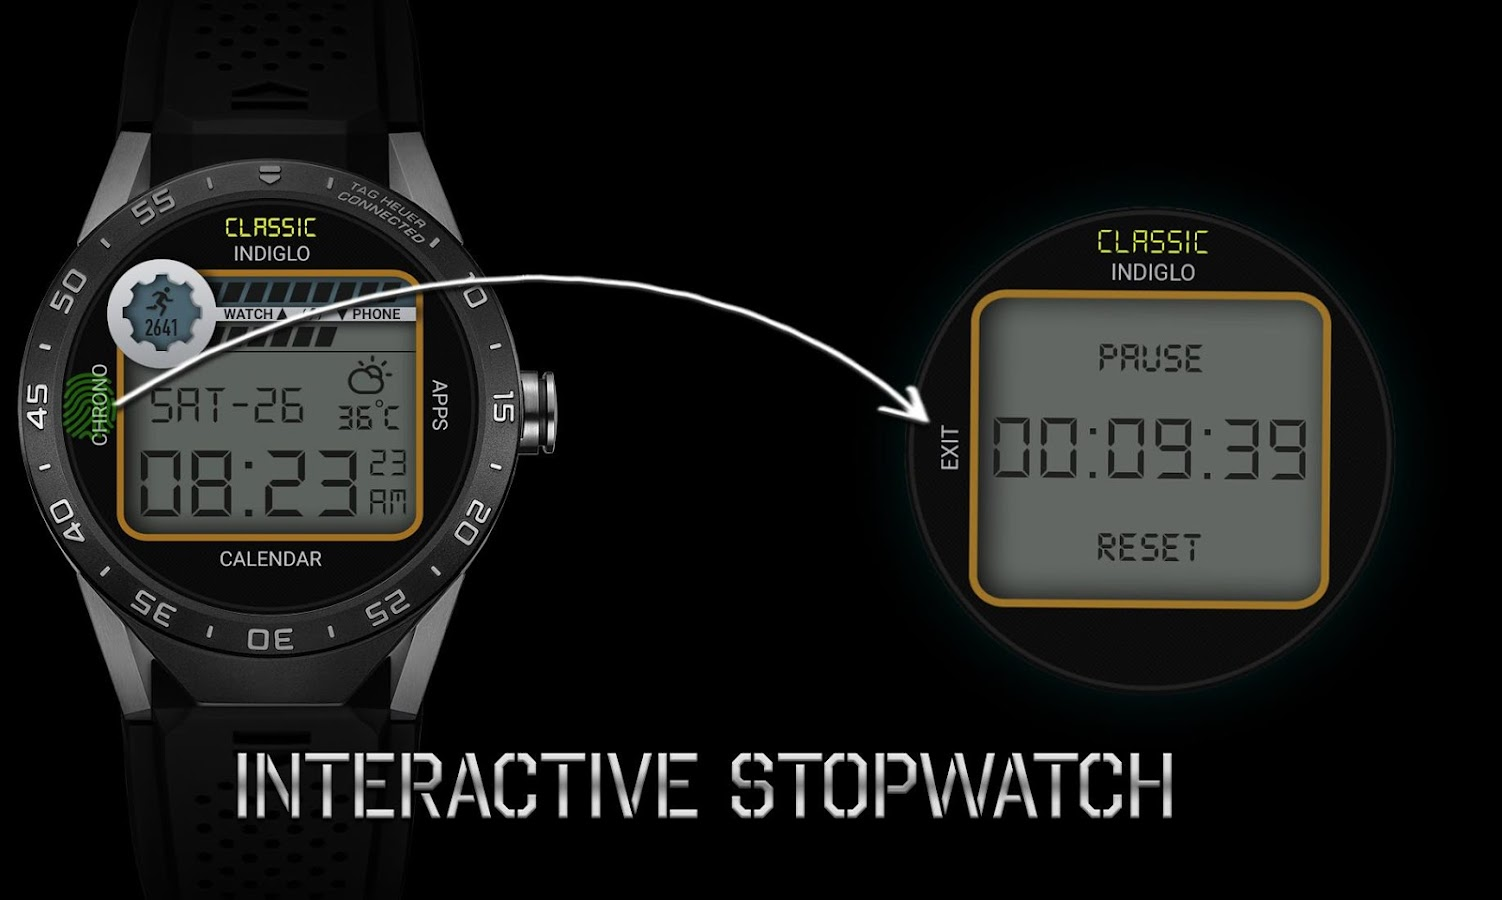 Retro Interactive Watch Face Screenshot 9